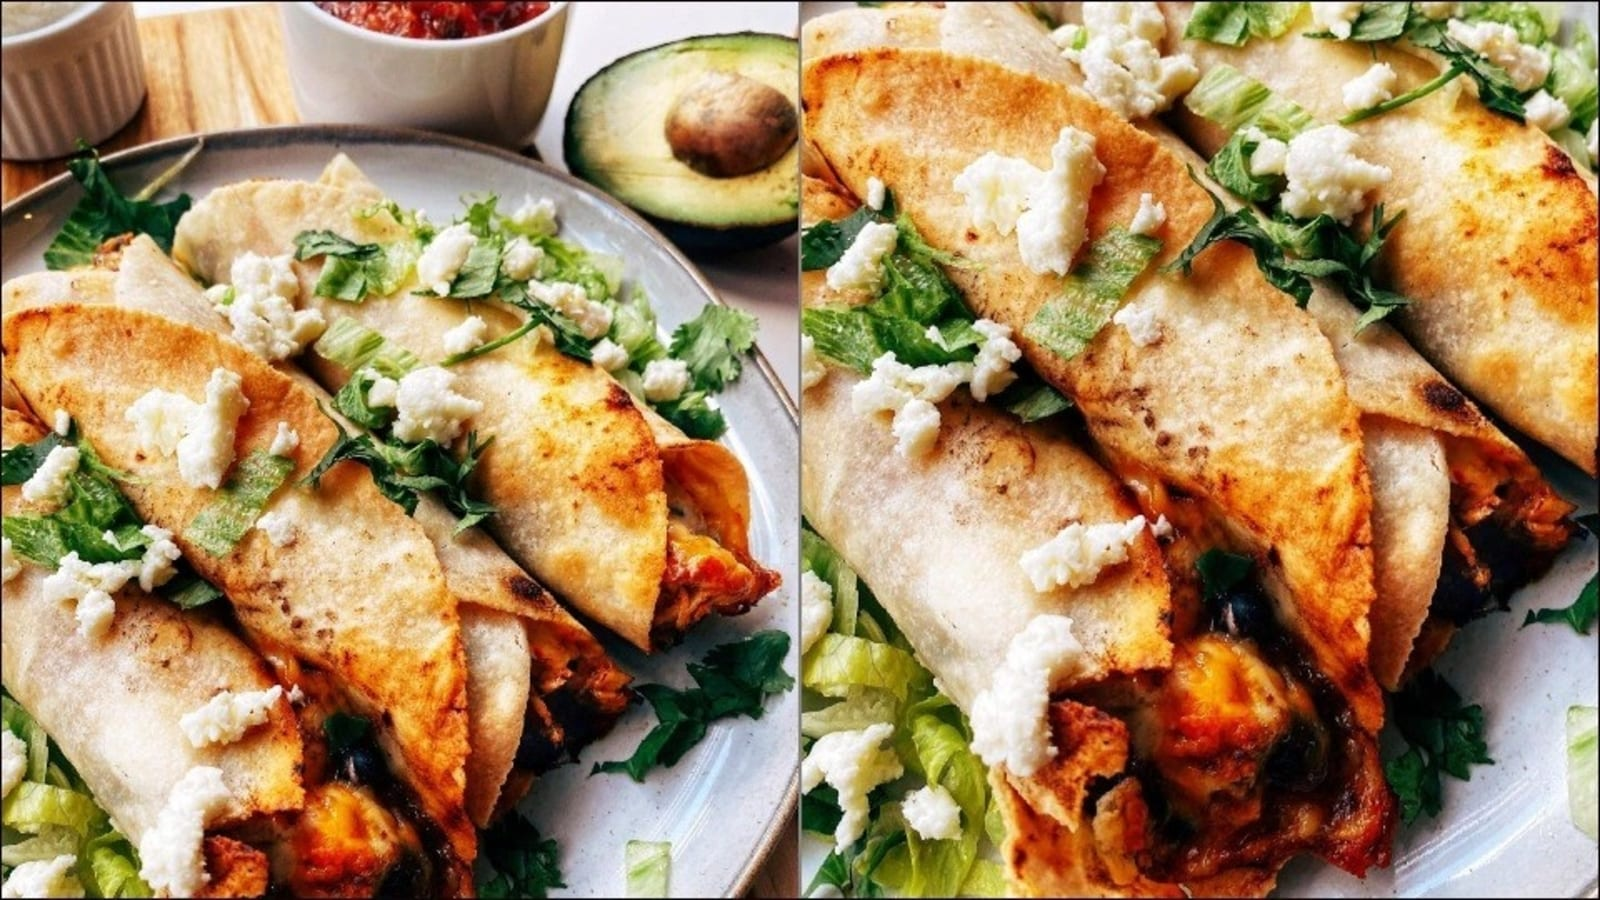 Recipe: Black bean chicken flautas is a dinner dish cooked in 15 minutes